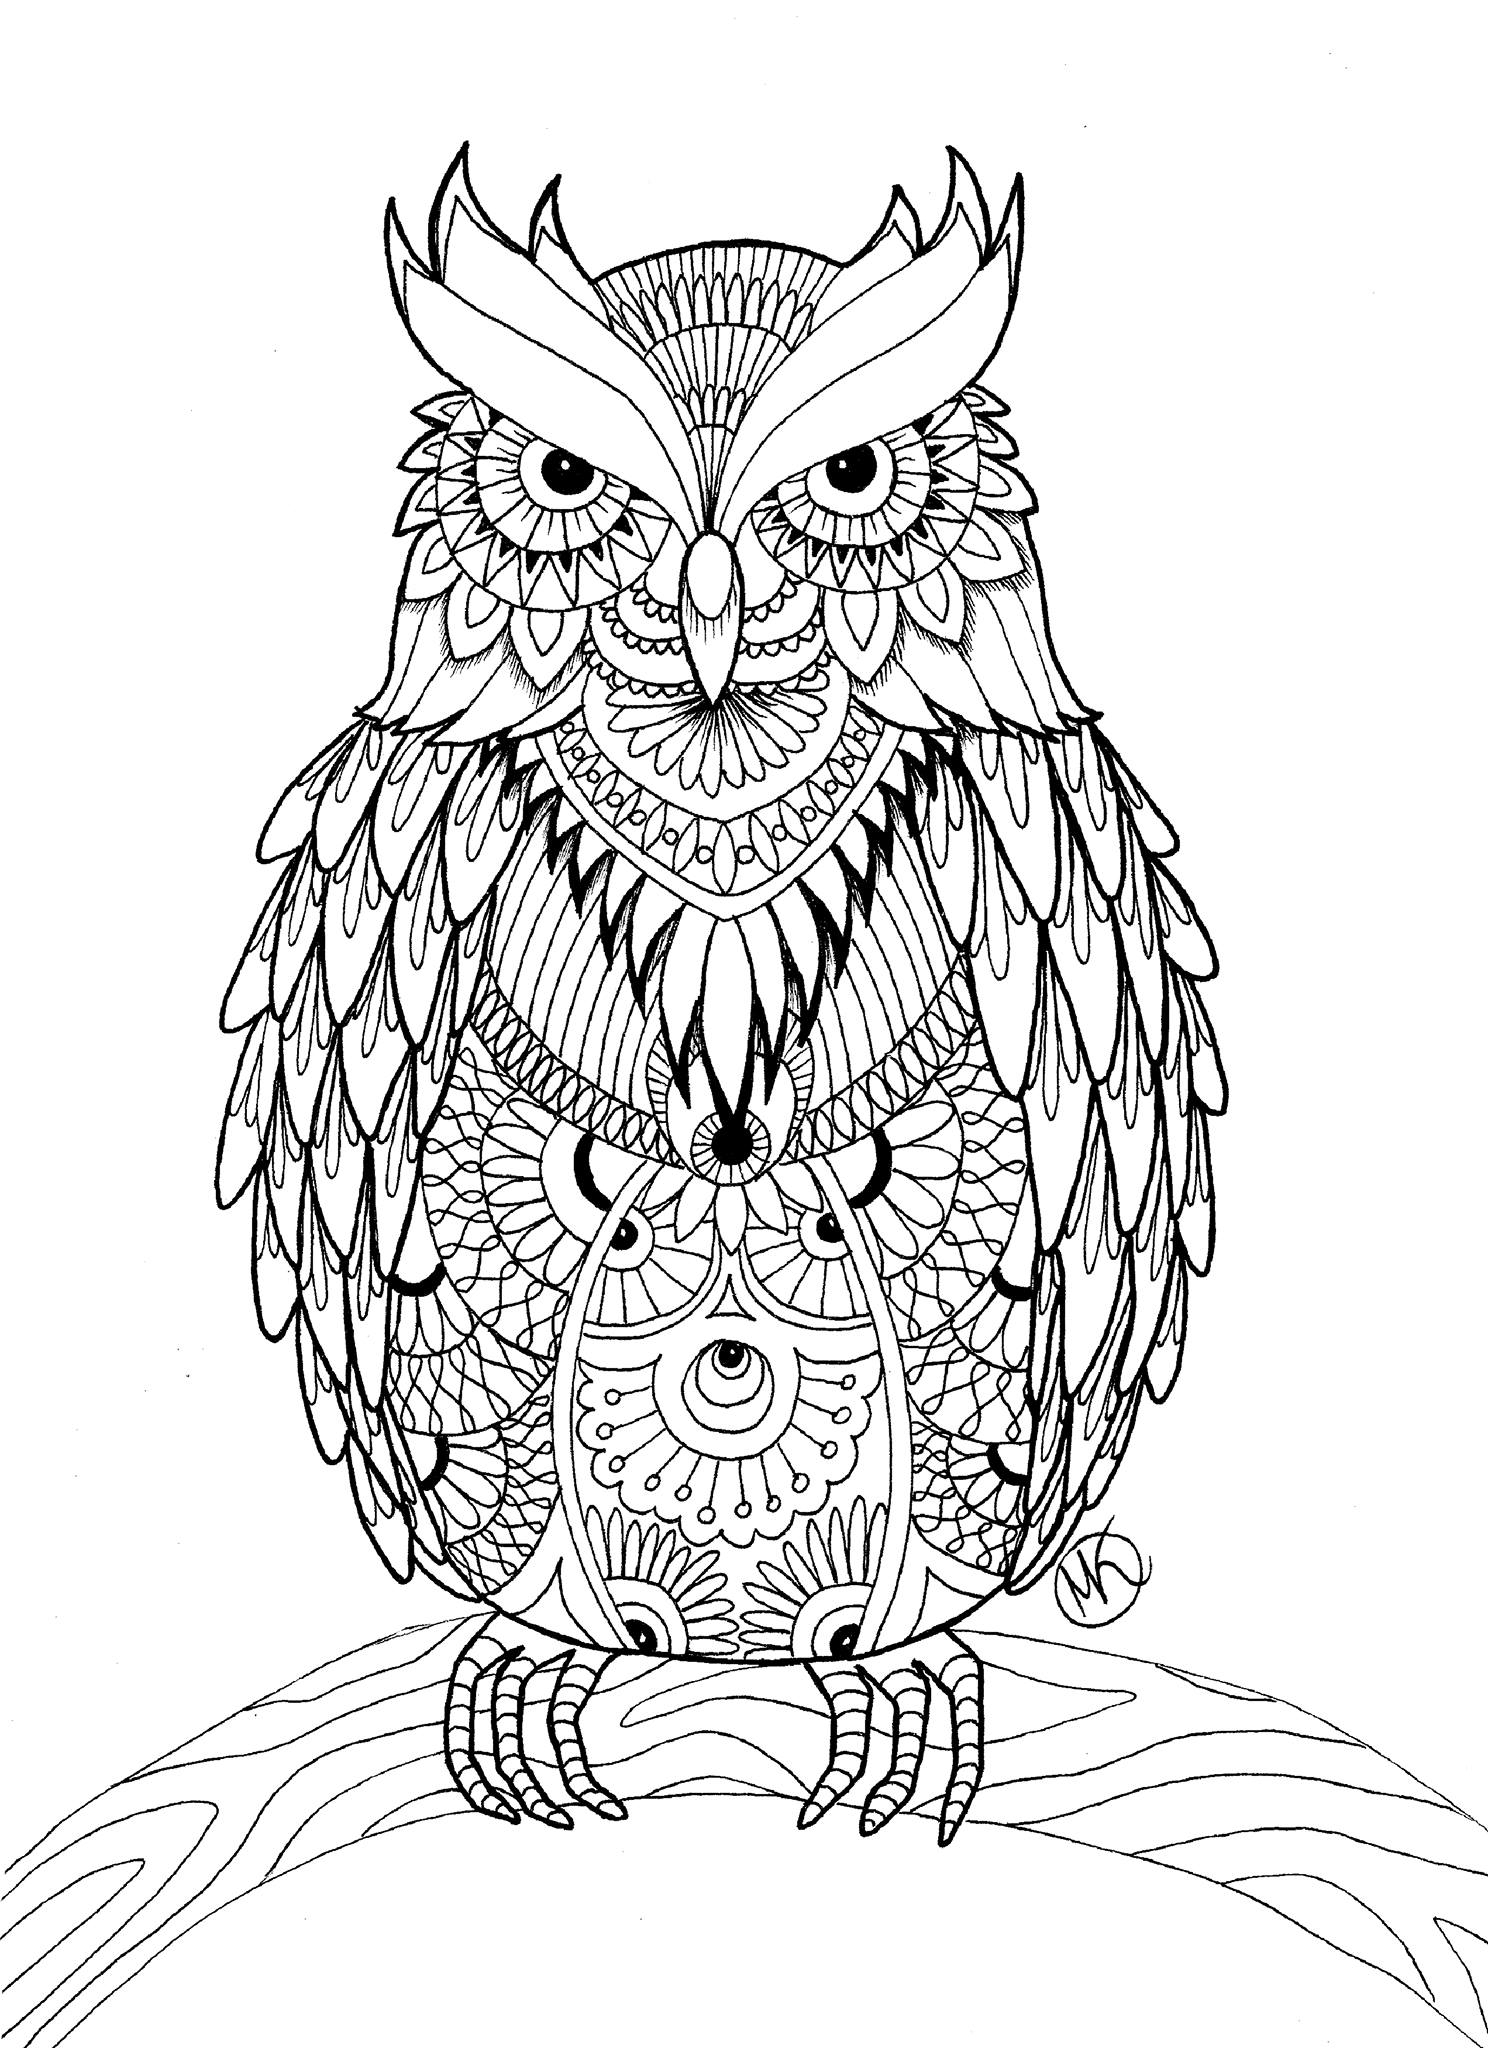 Owl coloring pages for adults free detailed owl coloring for Adult coloring pages printable